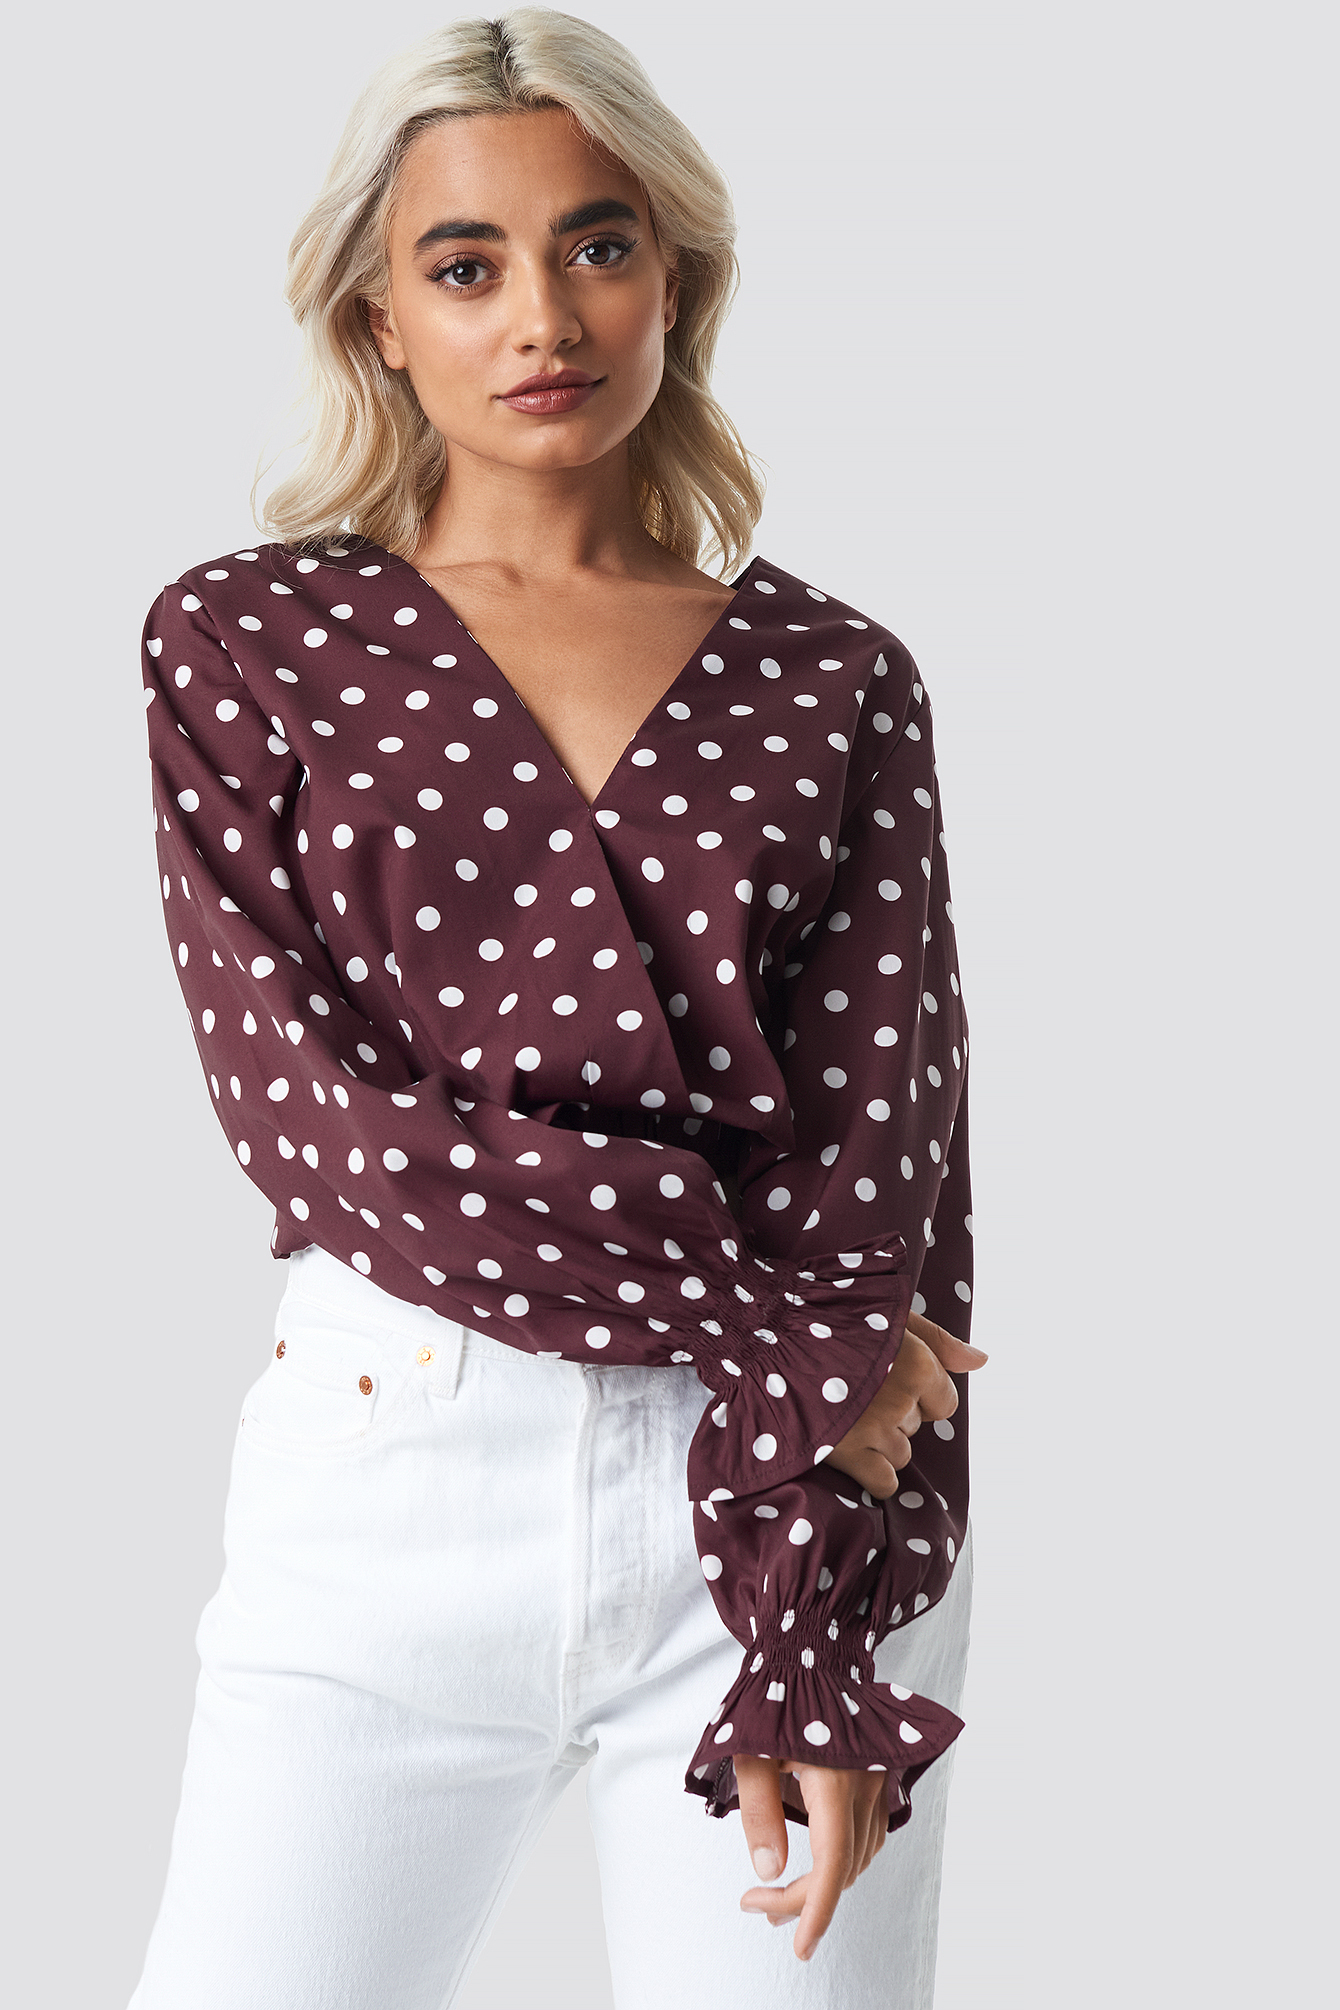 Burgundy/White dots Wrap Dotted Blouse